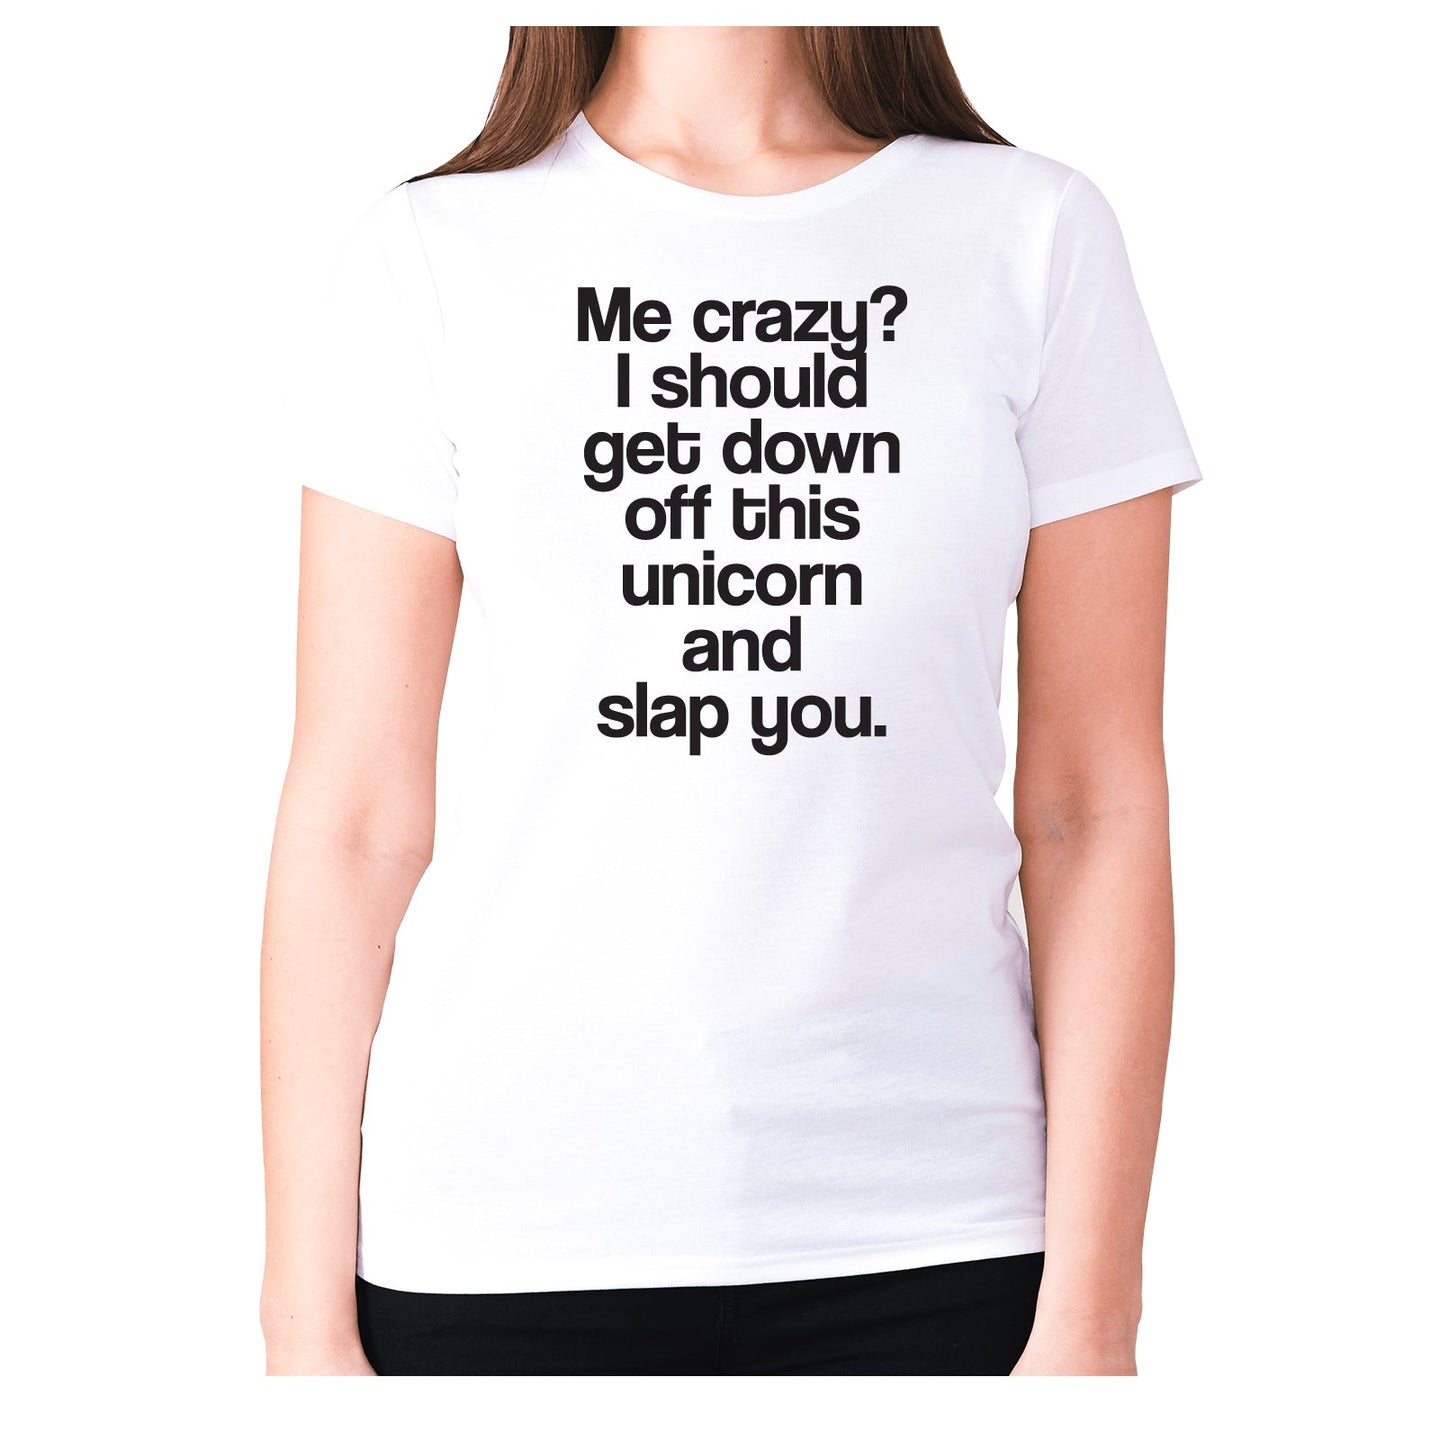 Me crazy I should get down off this unicorn and slap you - women's premium t-shirt - Graphic Gear